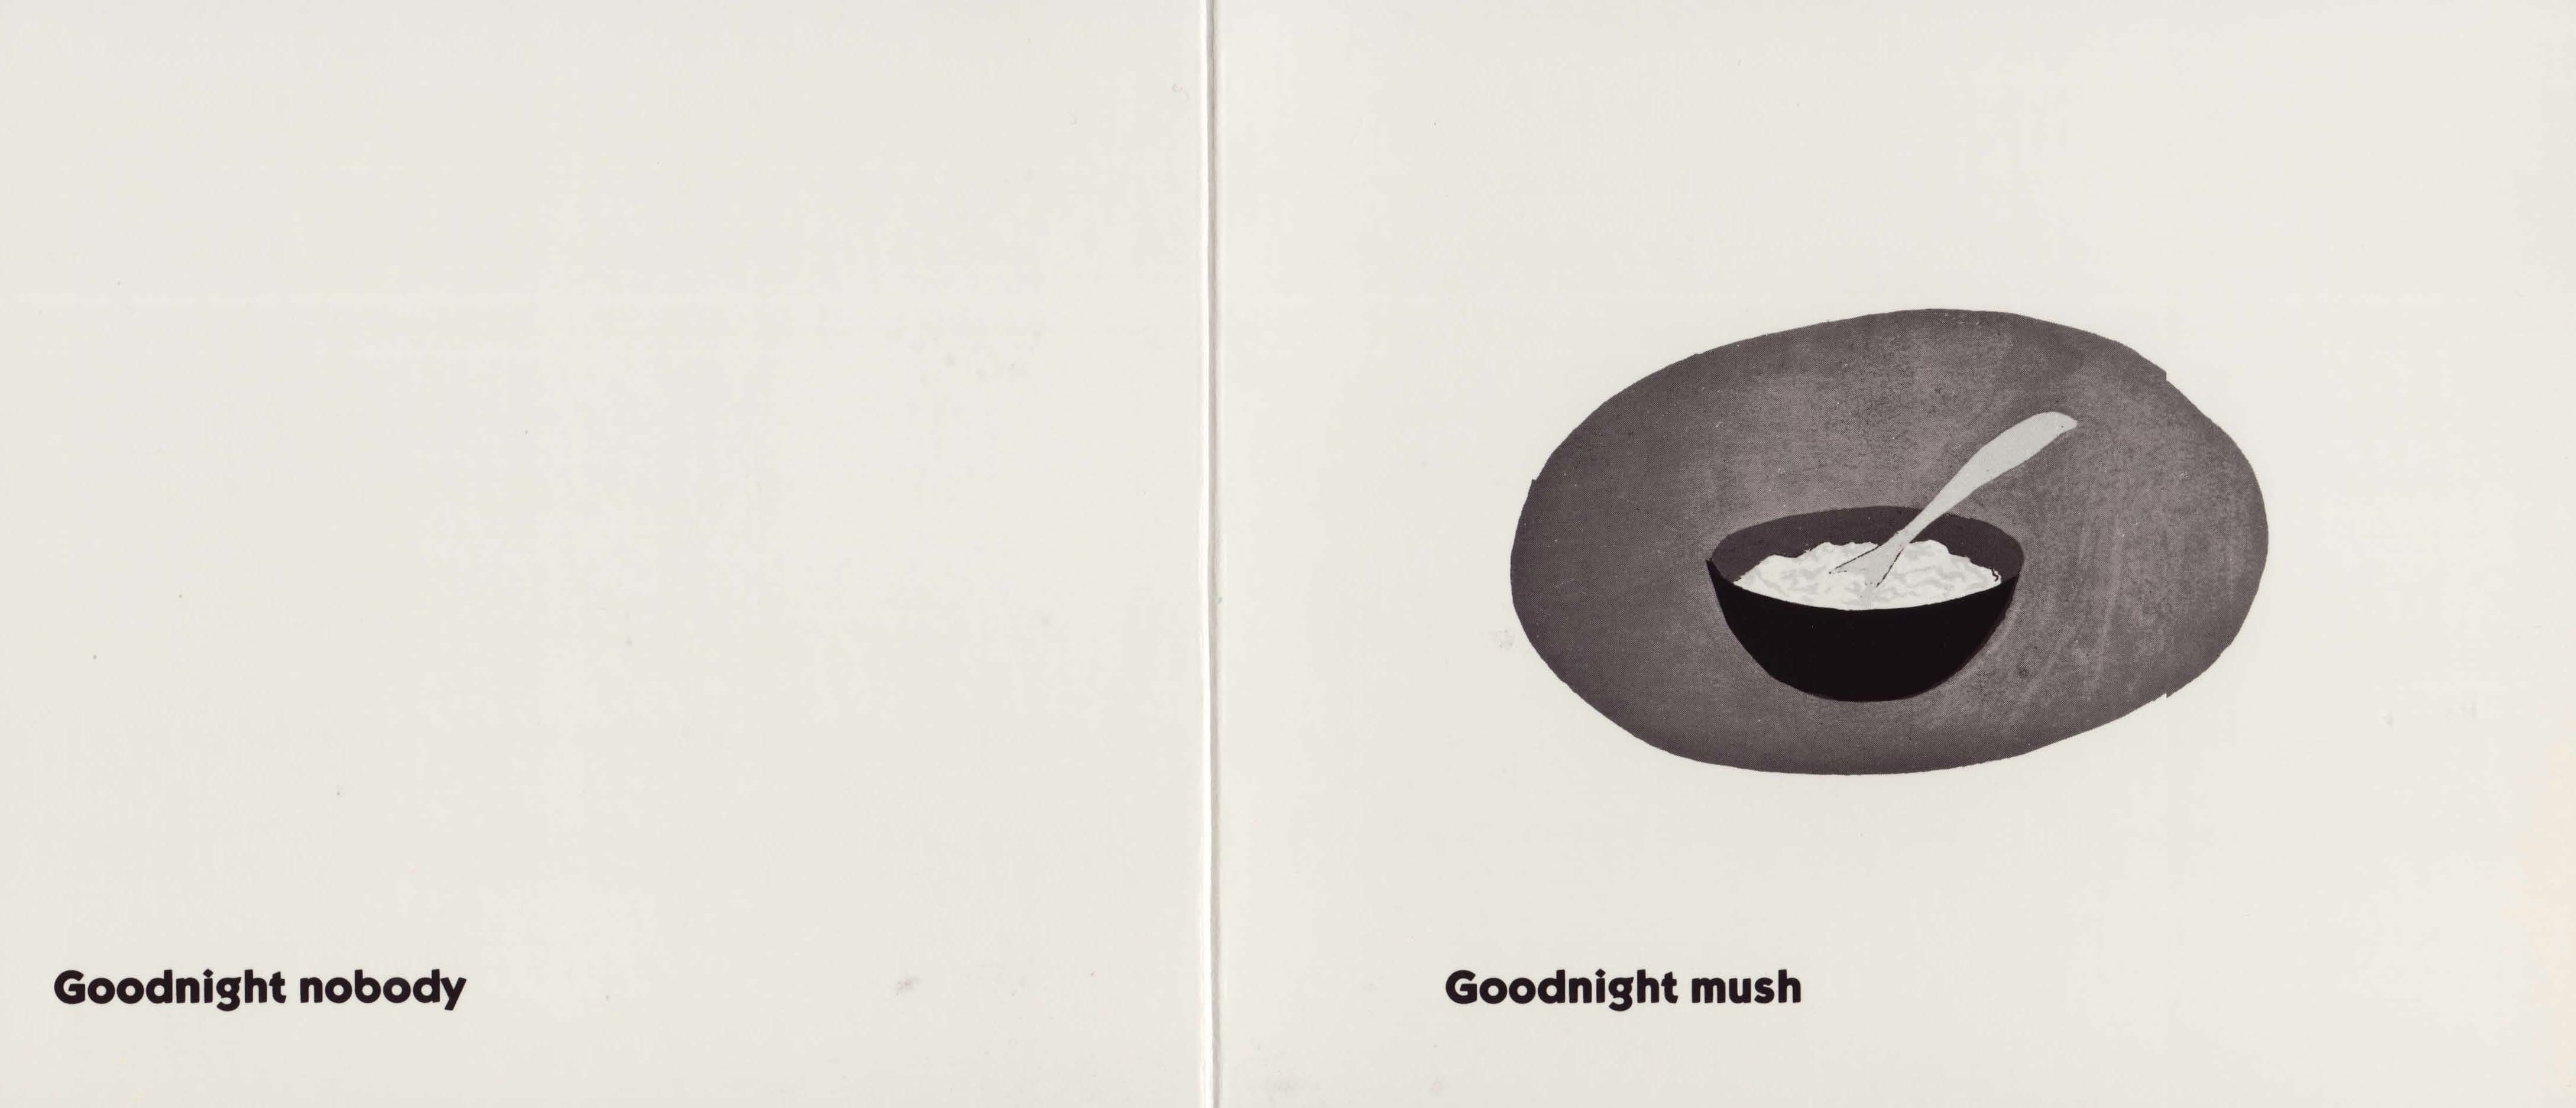 goodnight moon analysis